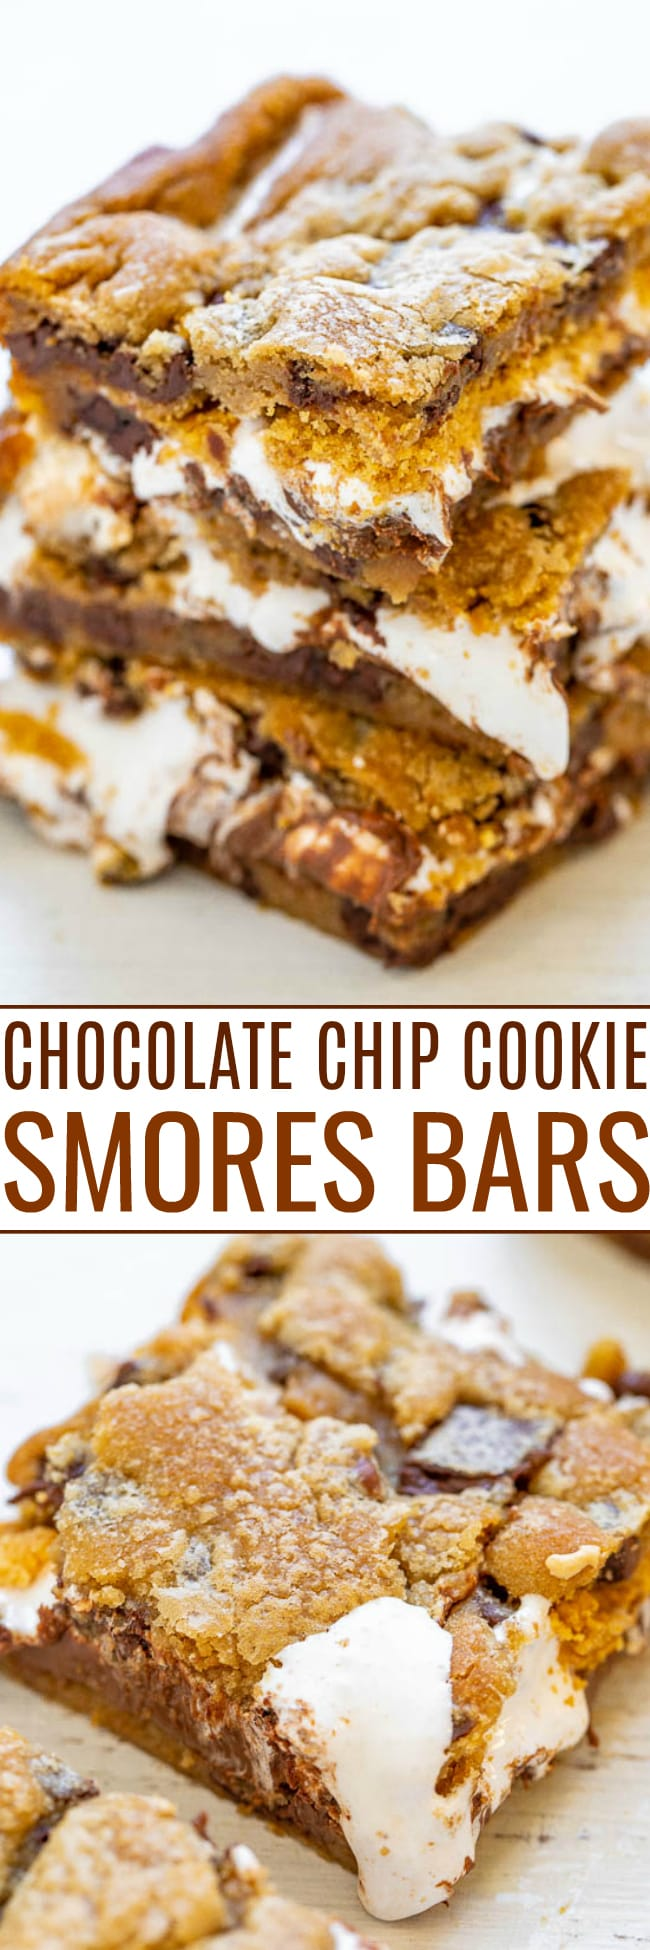 Chocolate Chip Cookie Smores Bars - Between layers of super soft chocolate chip cookie dough there's chocolate, marshmallows, and graham cracker crumbs for the most DECADENT smores ever!! So EASY and just 4 main ingredients!!